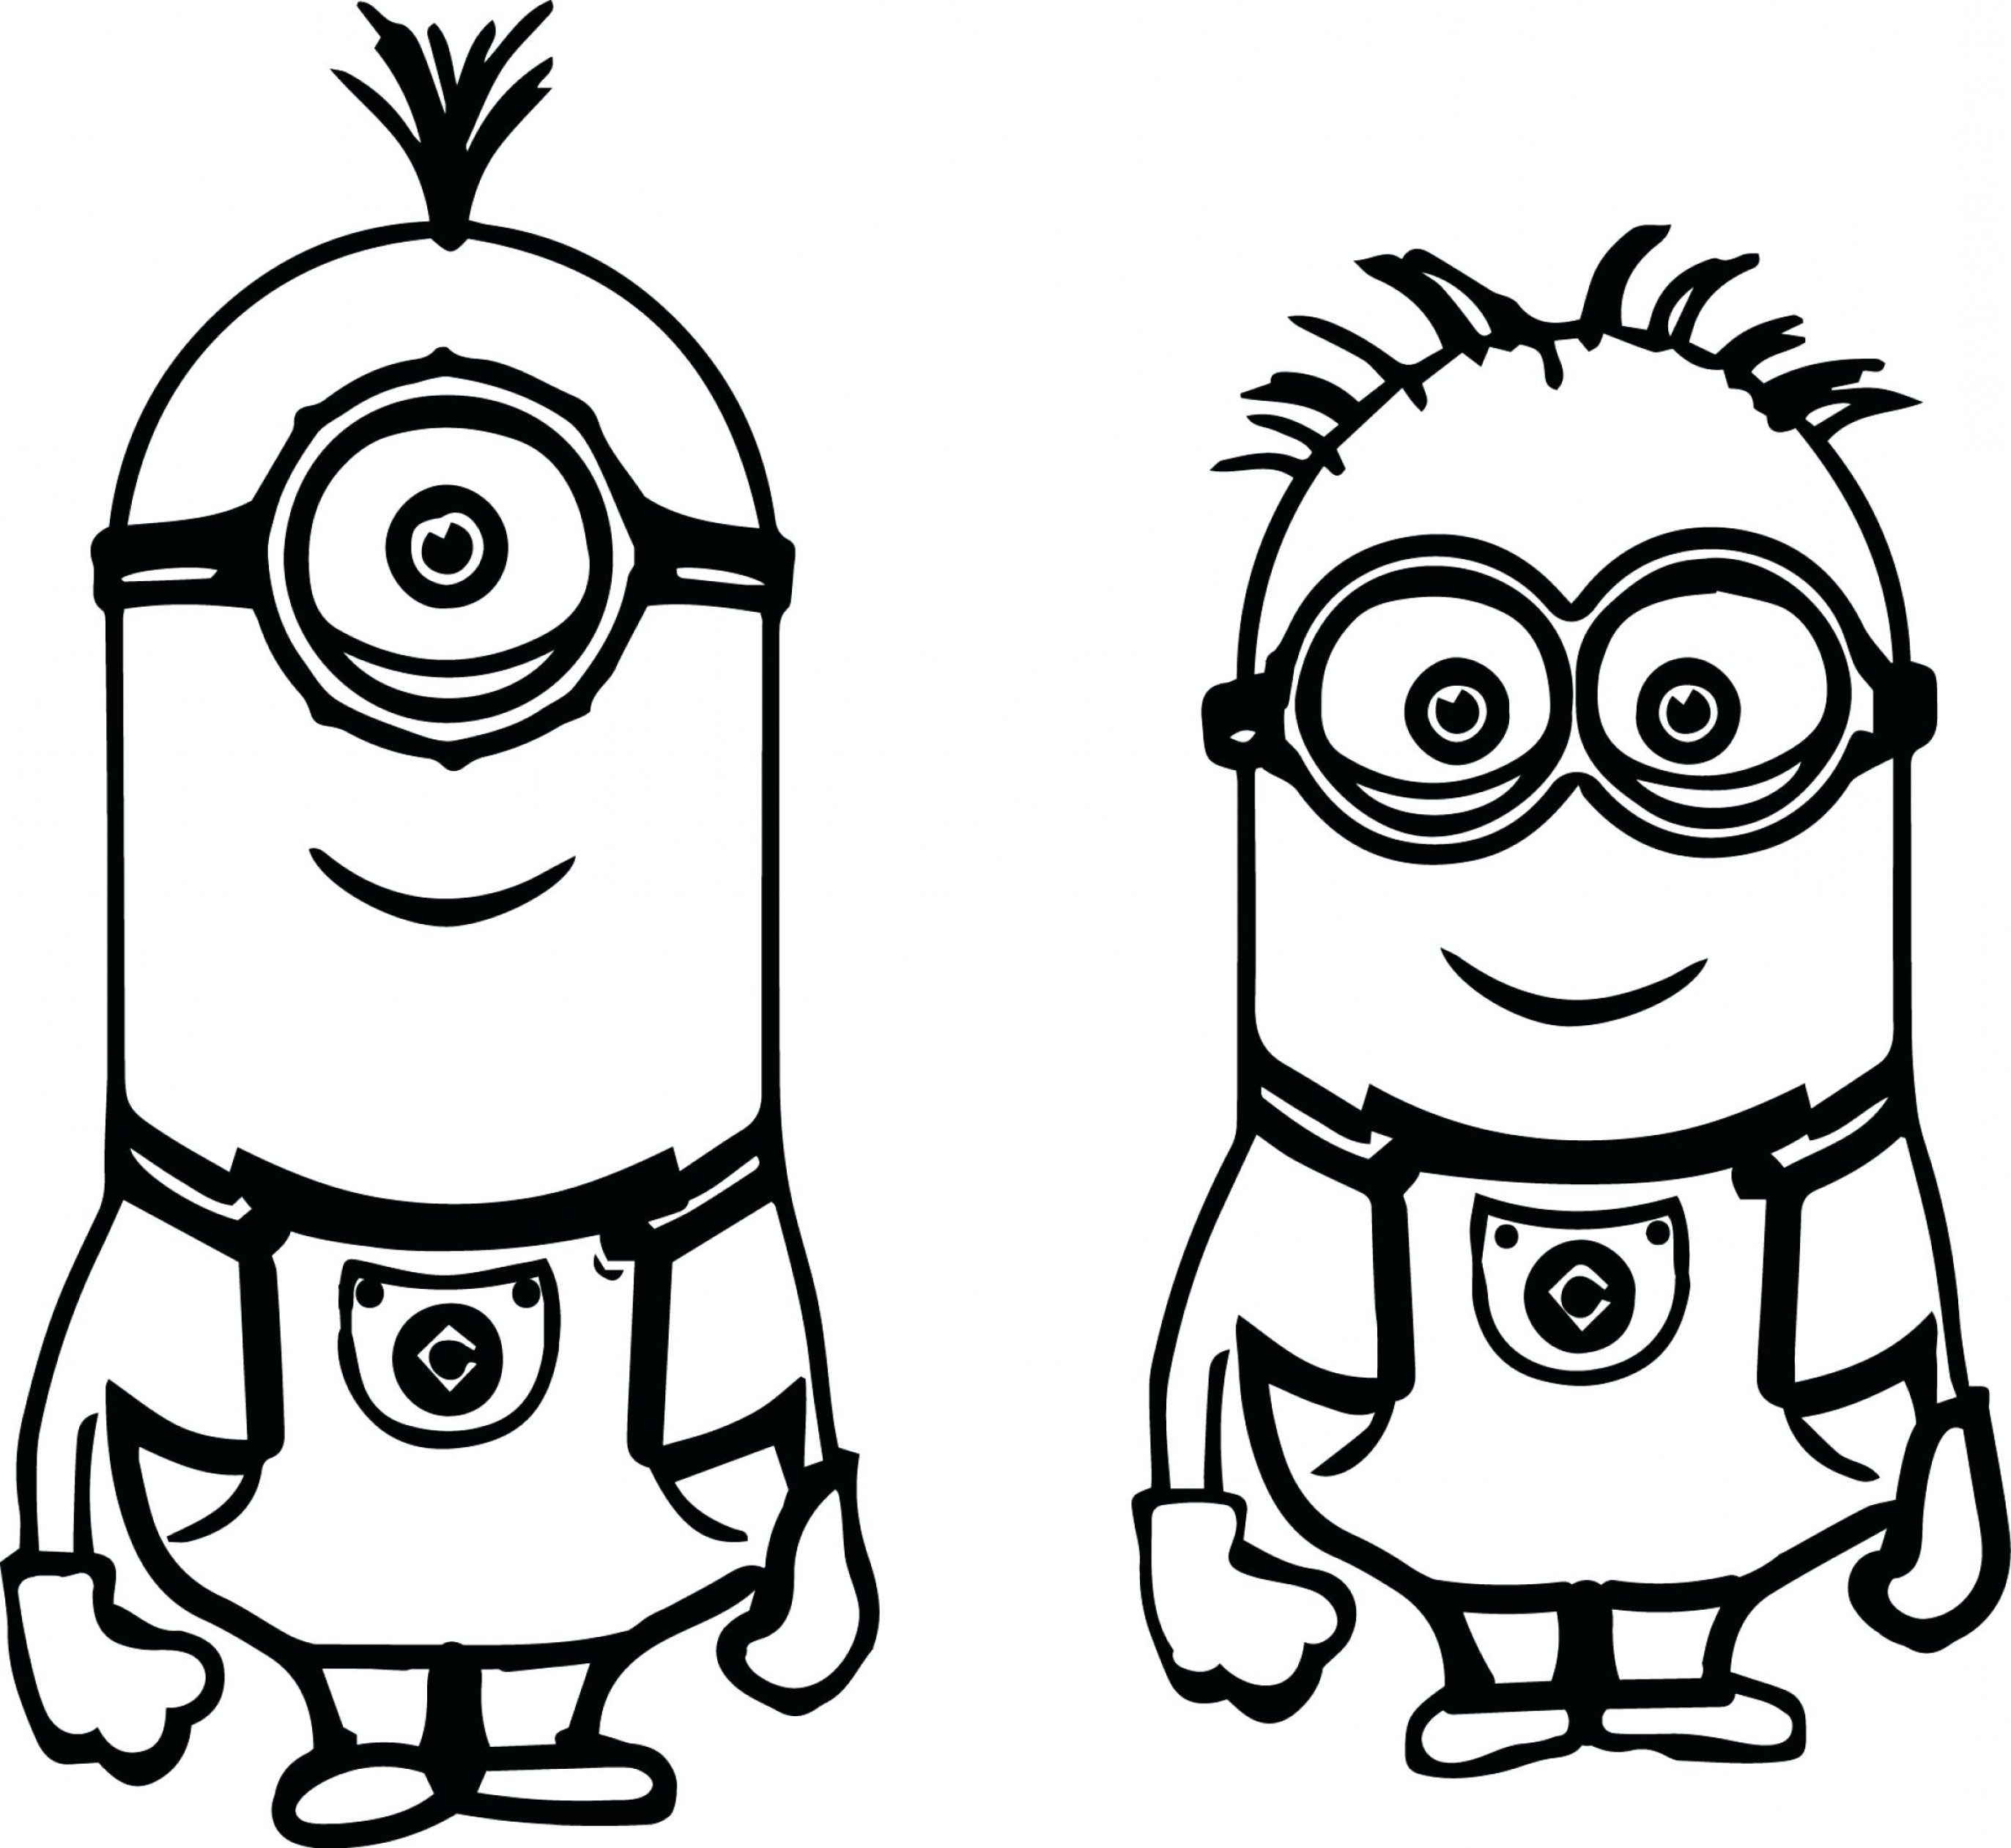 Minion From Despicable Me 2 Vector Image: Characters In Despicable Me Coloring Pages Free